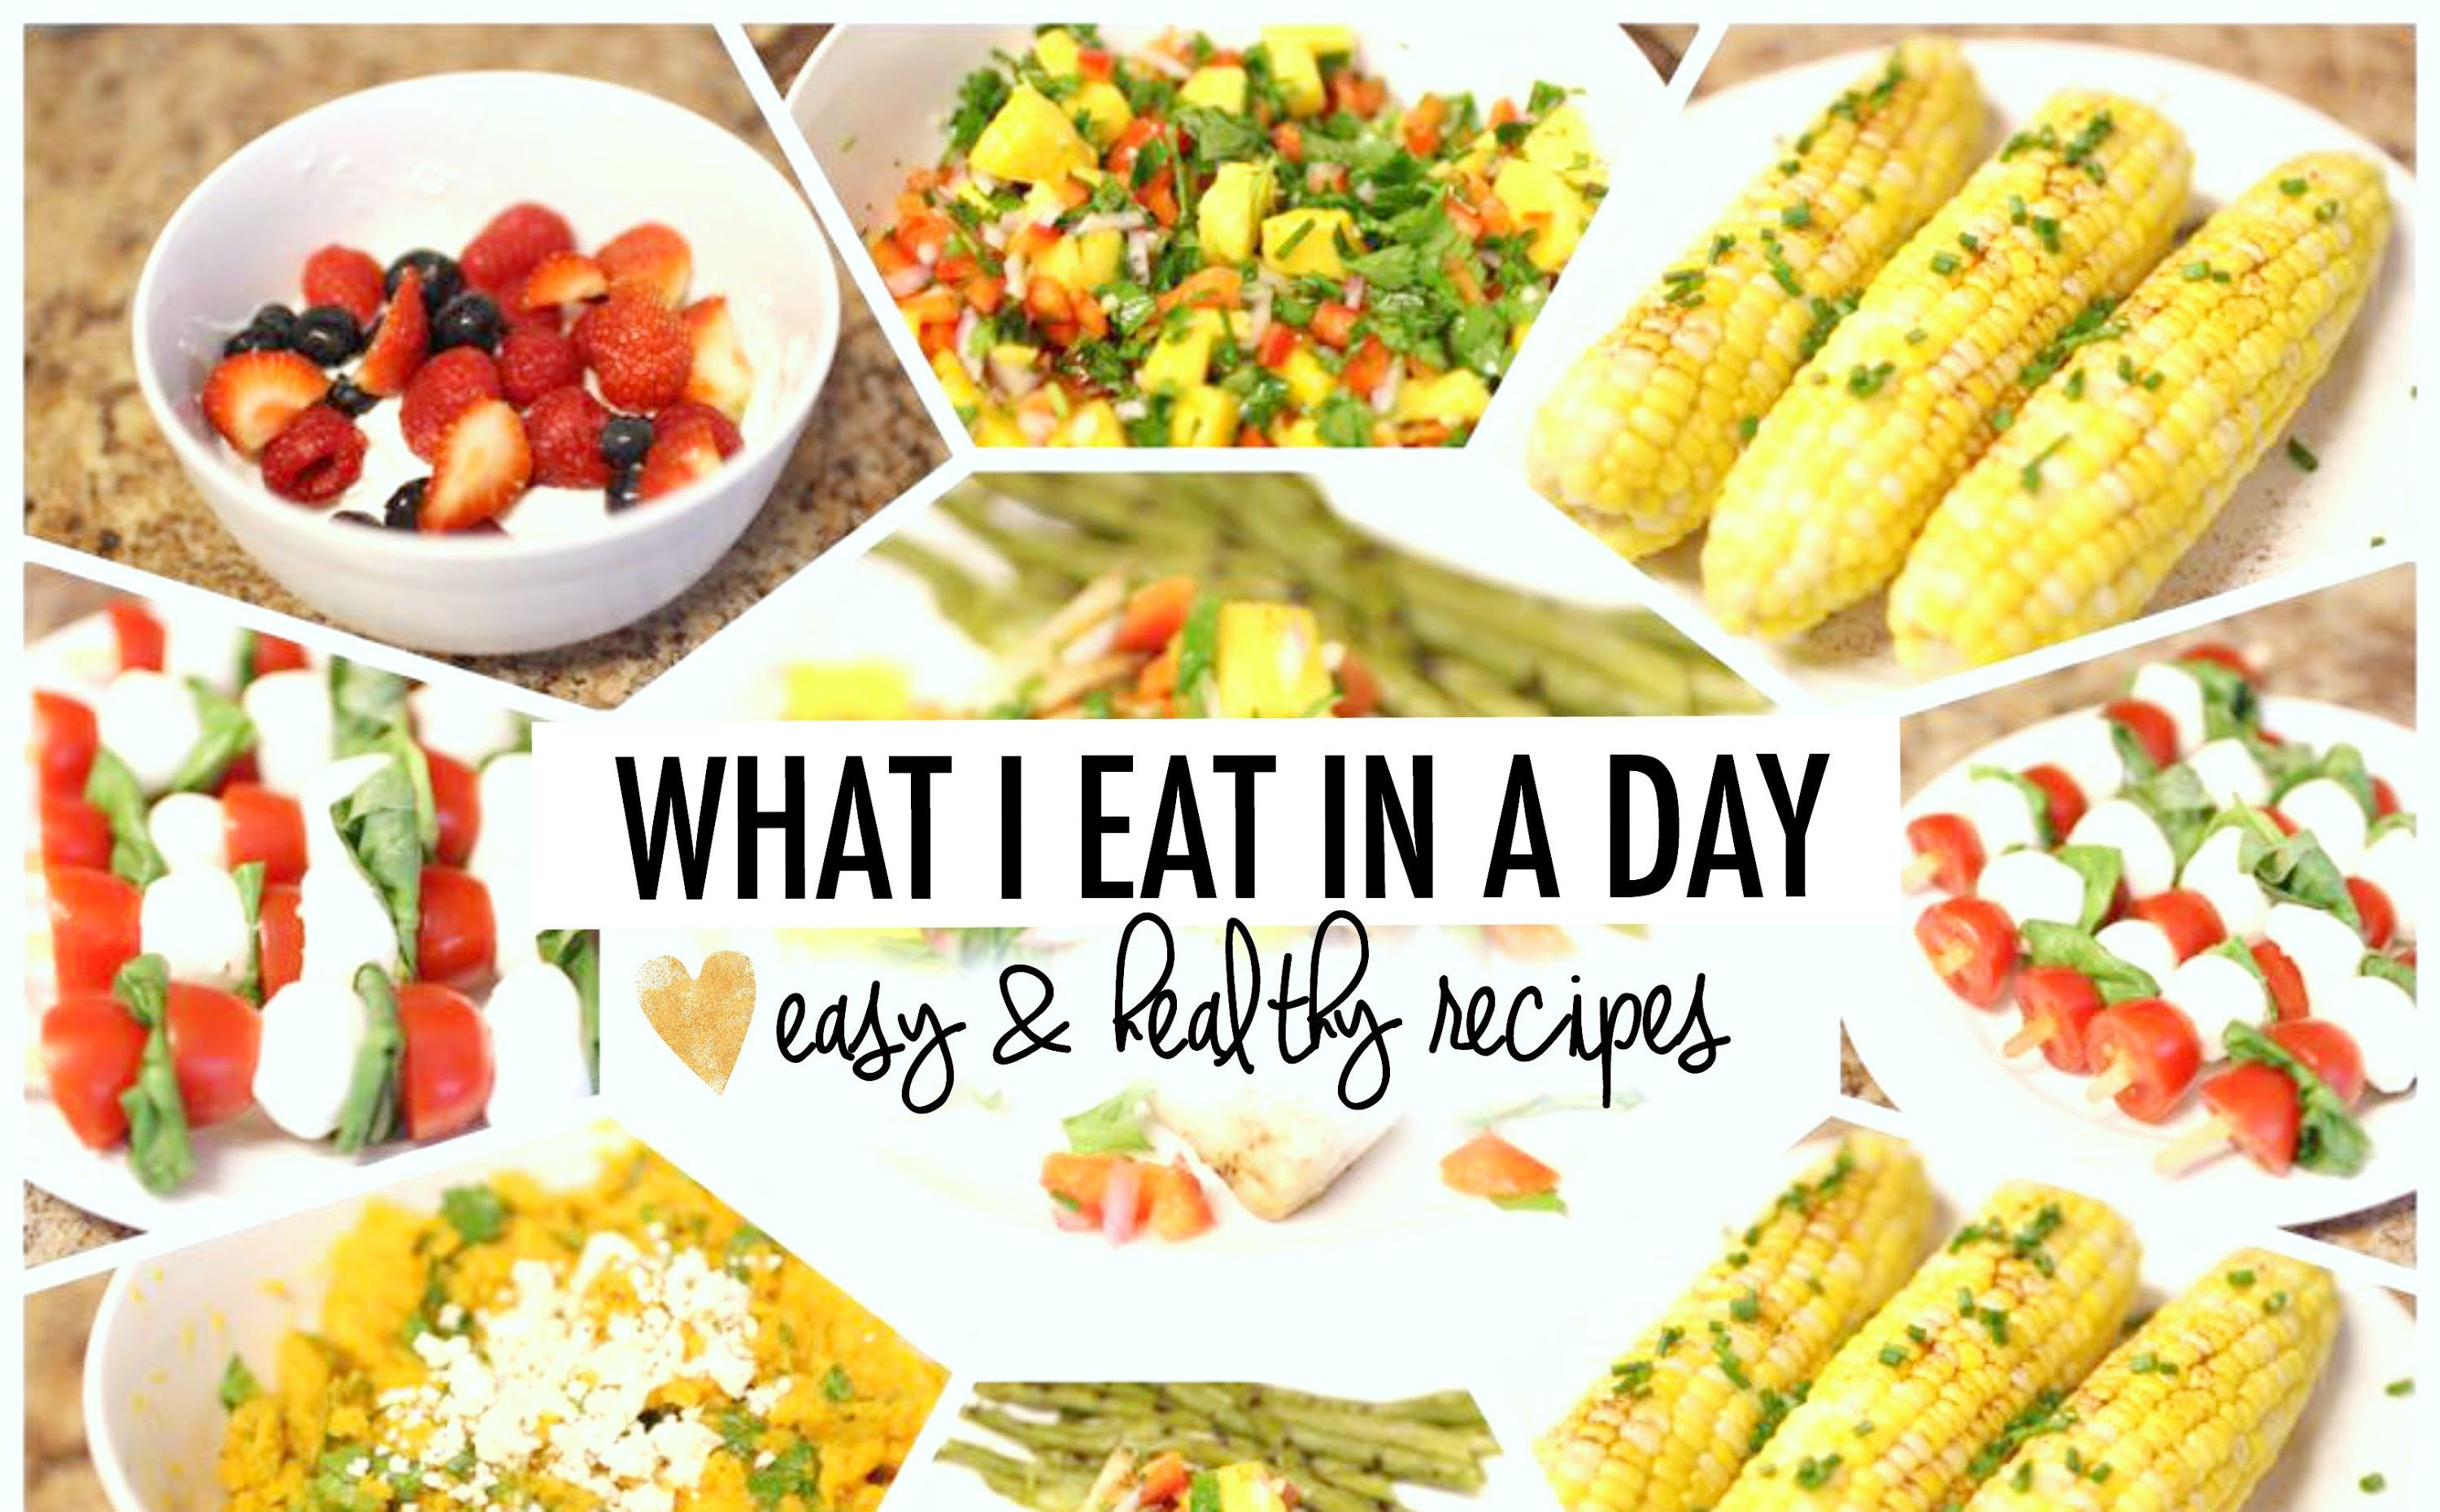 Pin by diane on health pinterest easy healthy recipes recipe websites healthy living eat watches vegetarian nutrition cooking food forumfinder Choice Image